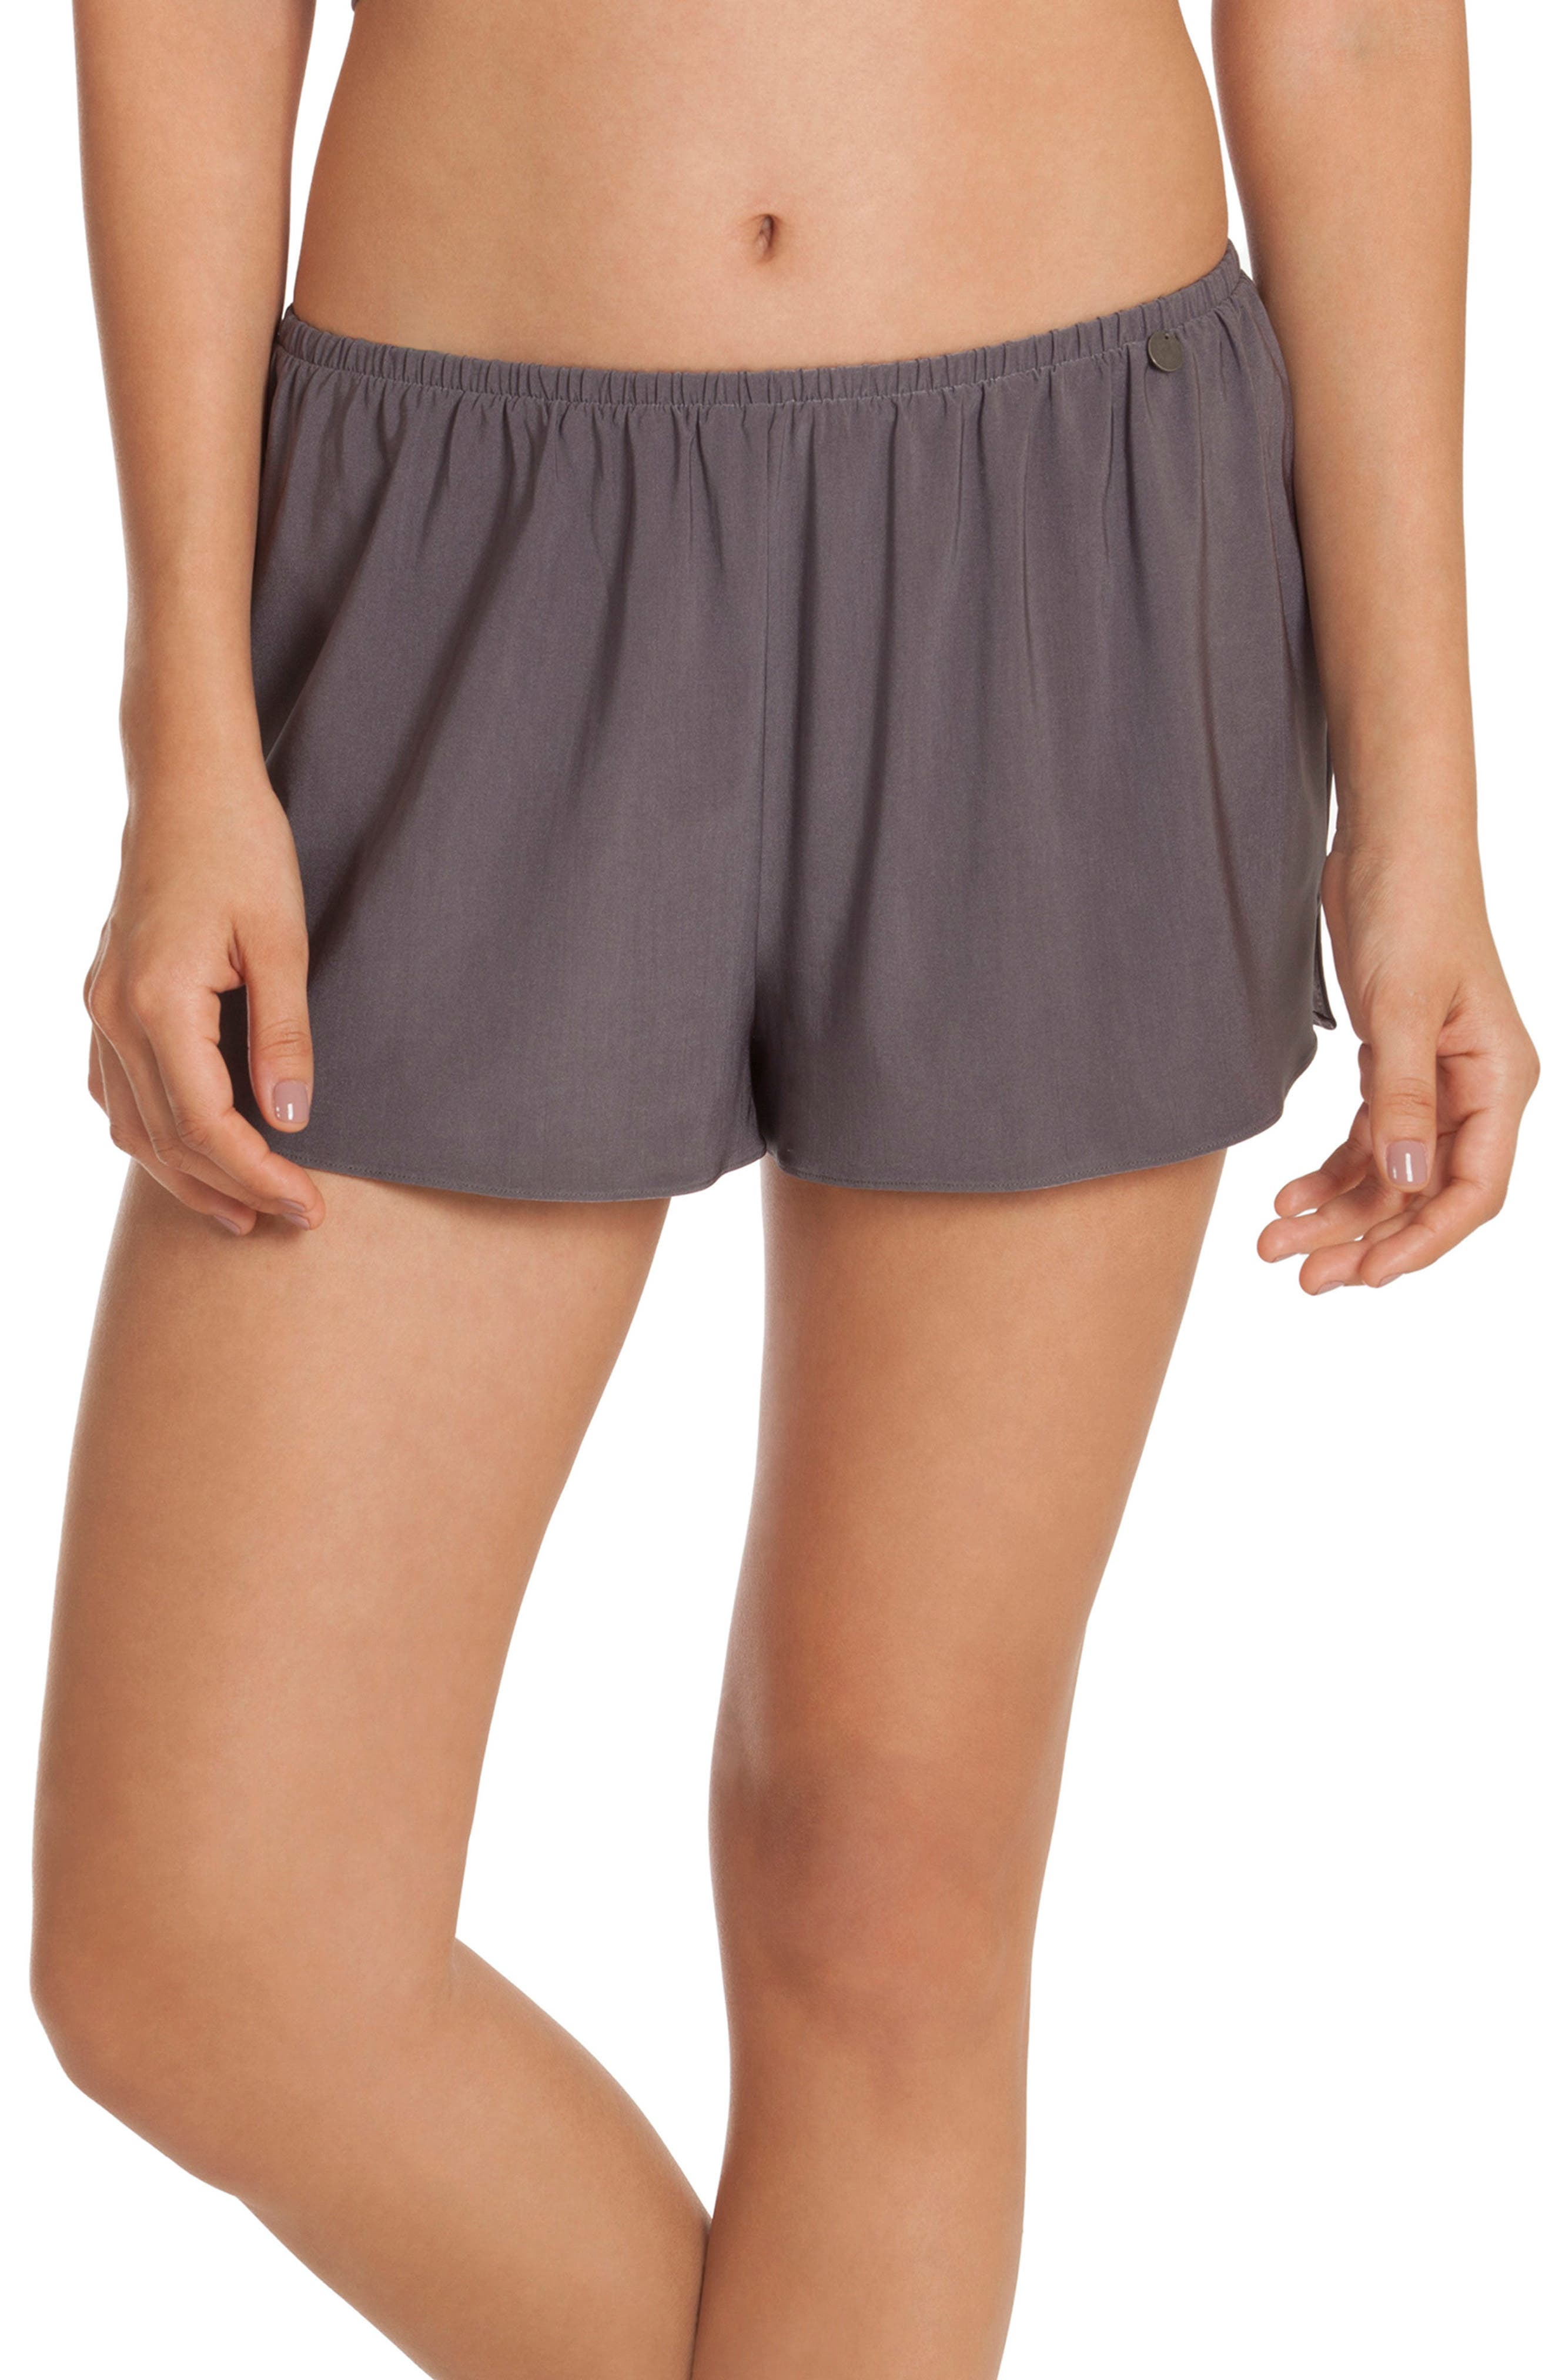 Pajama Shorts,                         Main,                         color, Charcoal